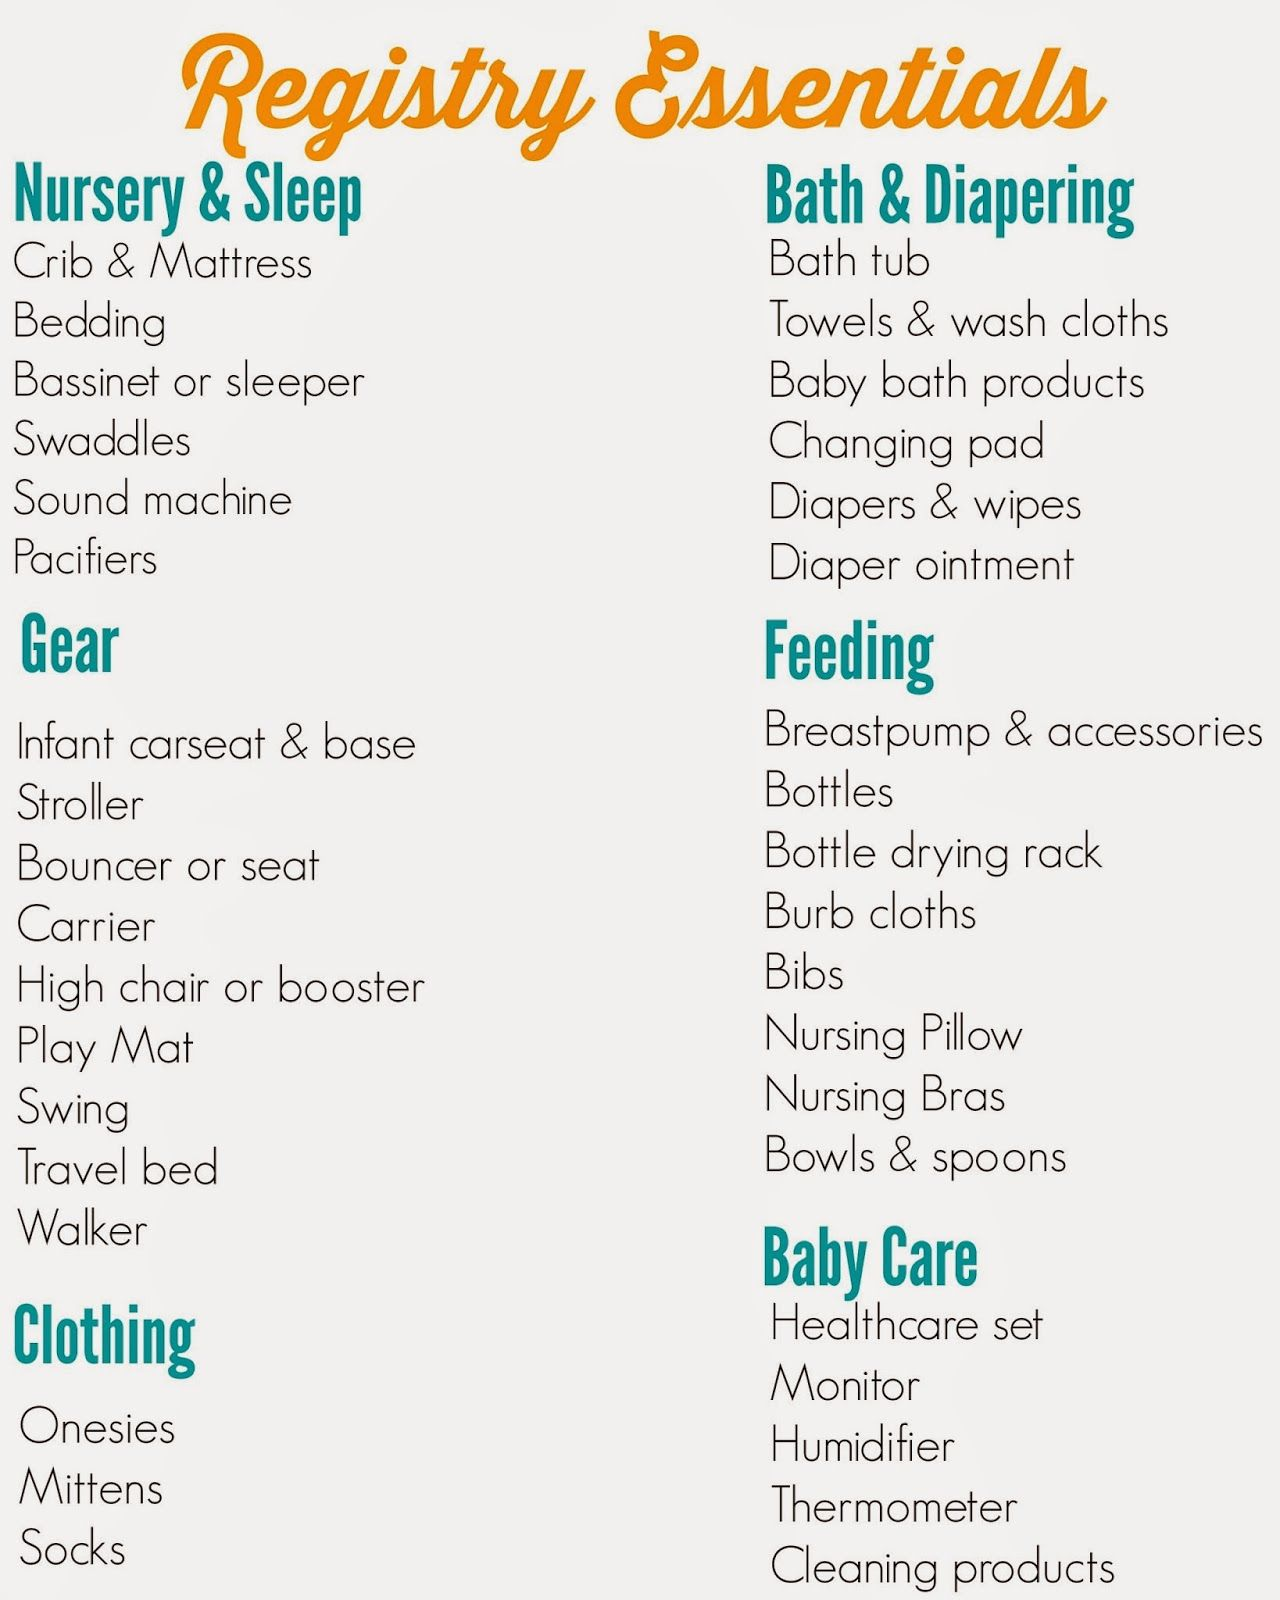 The Ultimate Registry Checklist